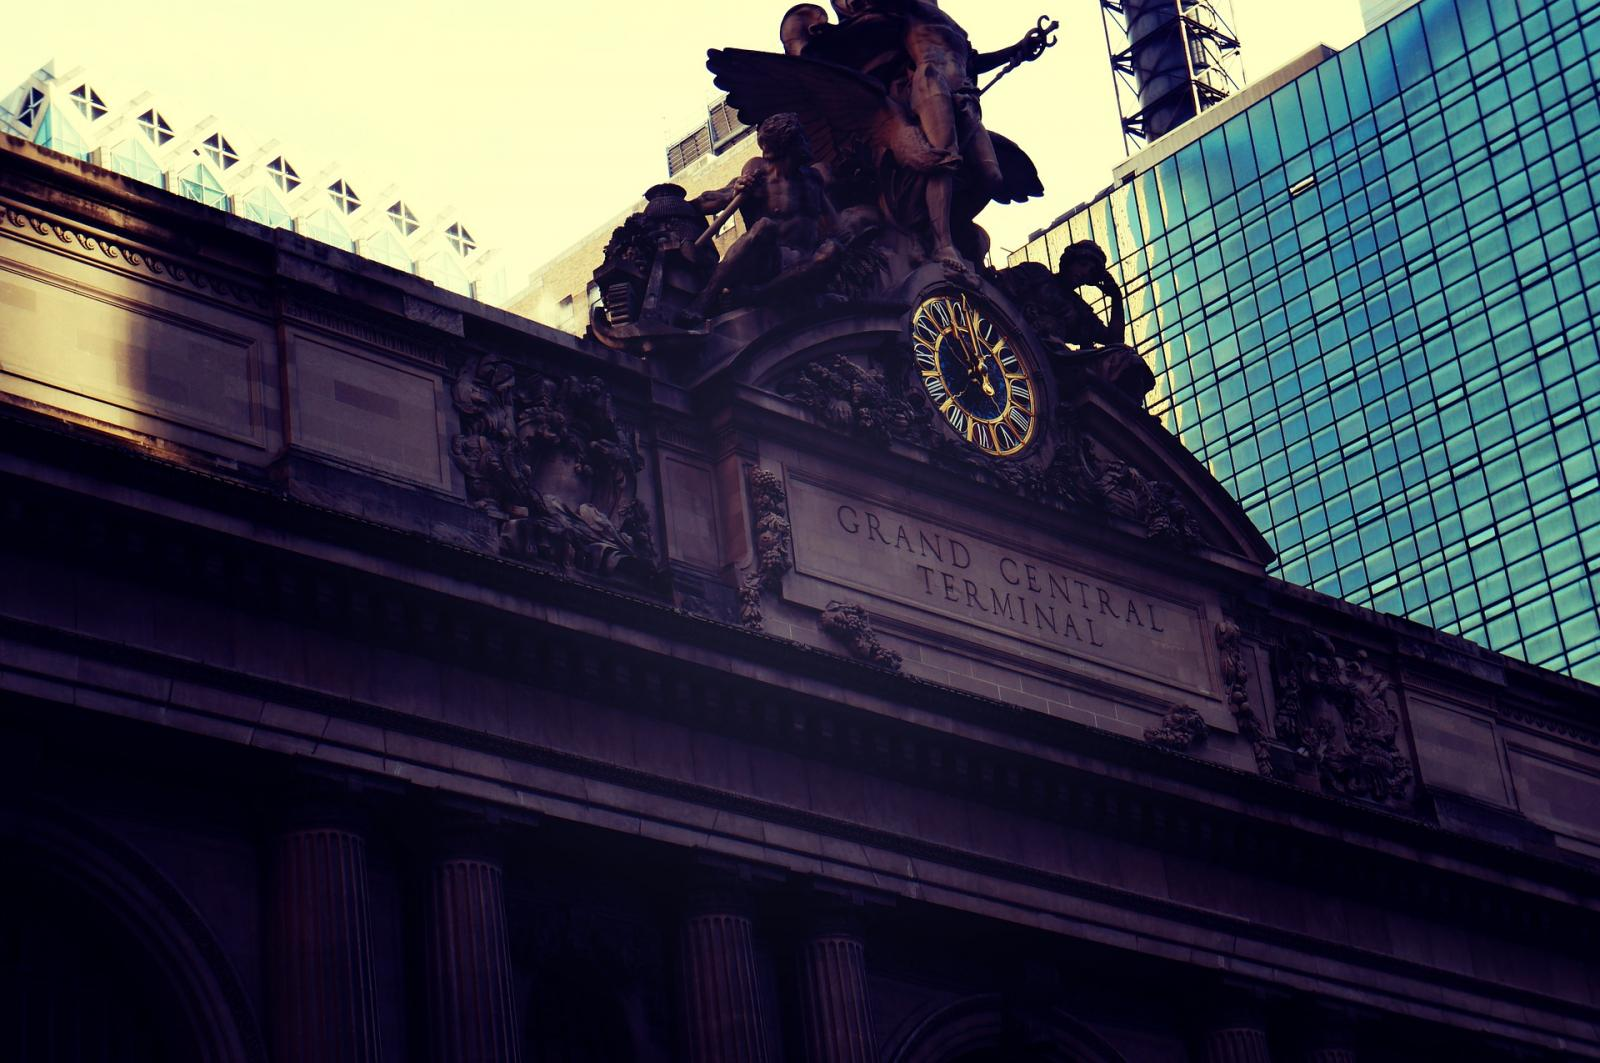 Gran Central Station de Nueva York